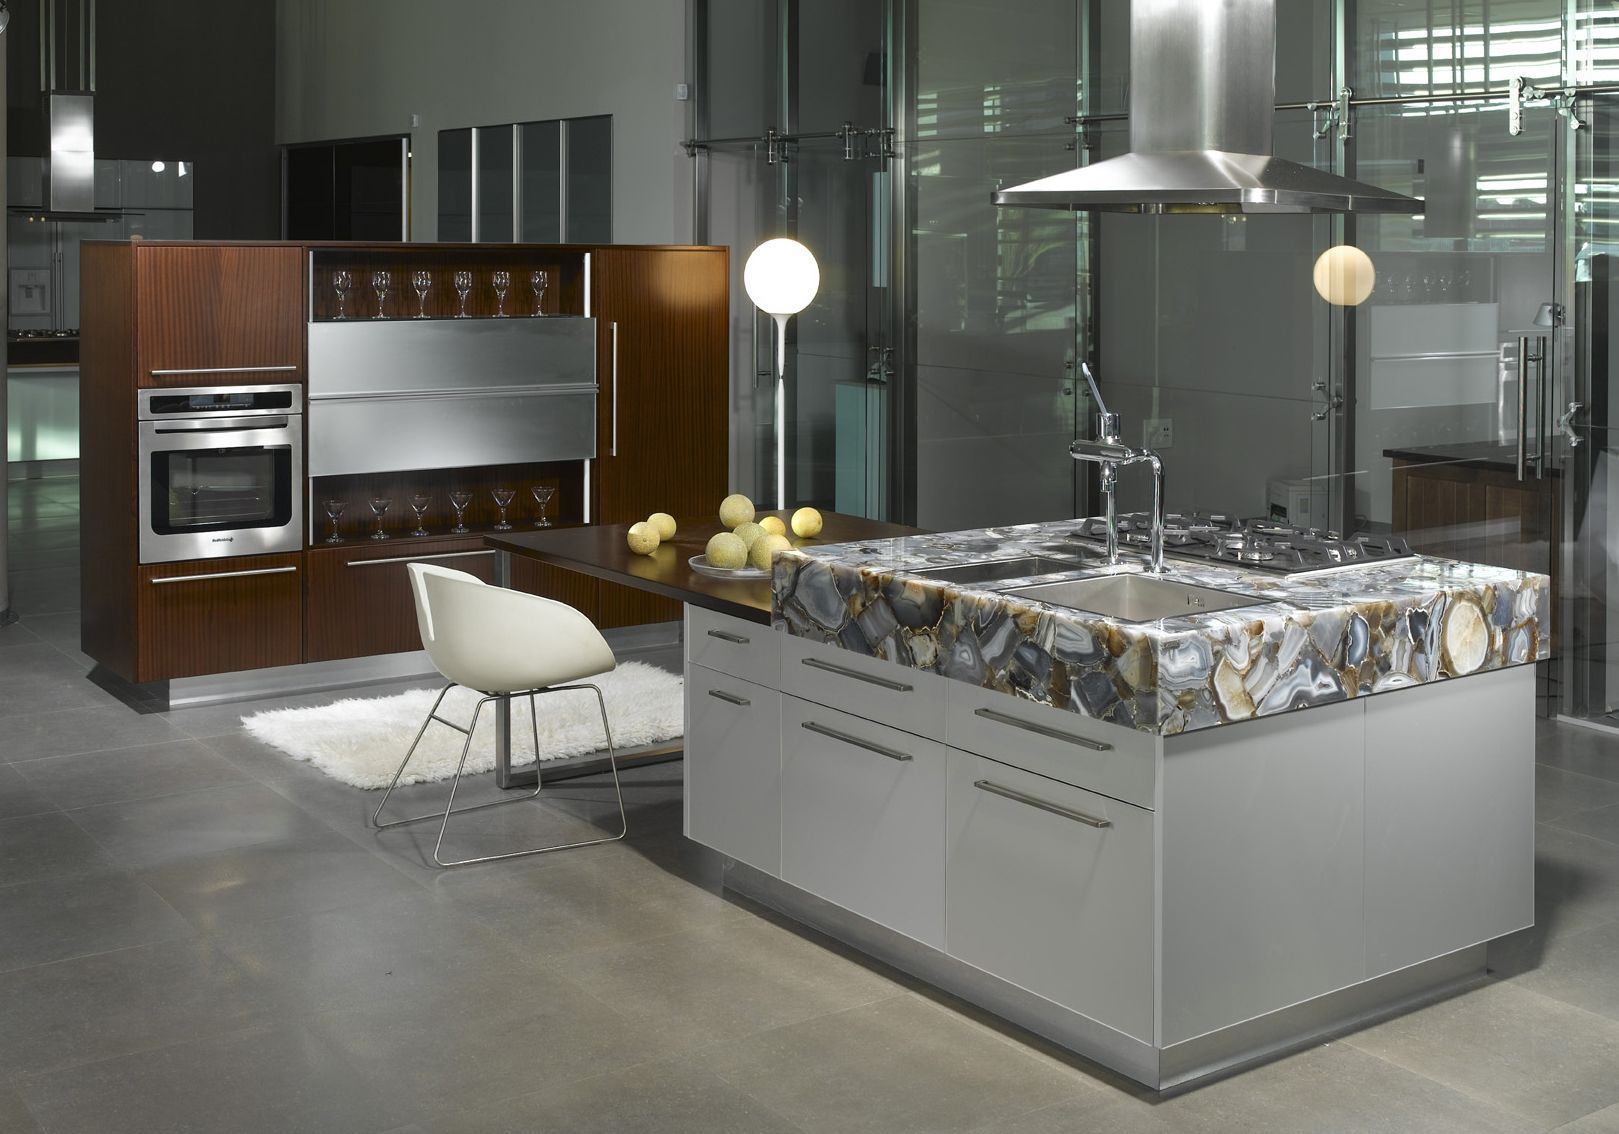 Caesarstone Concetto 8311 Gray Agate Is A Masterpiece That Gives An Added Value To Your Kitchen Www Caesarstone Sg Haus Deko Dekor Kuchendekoration